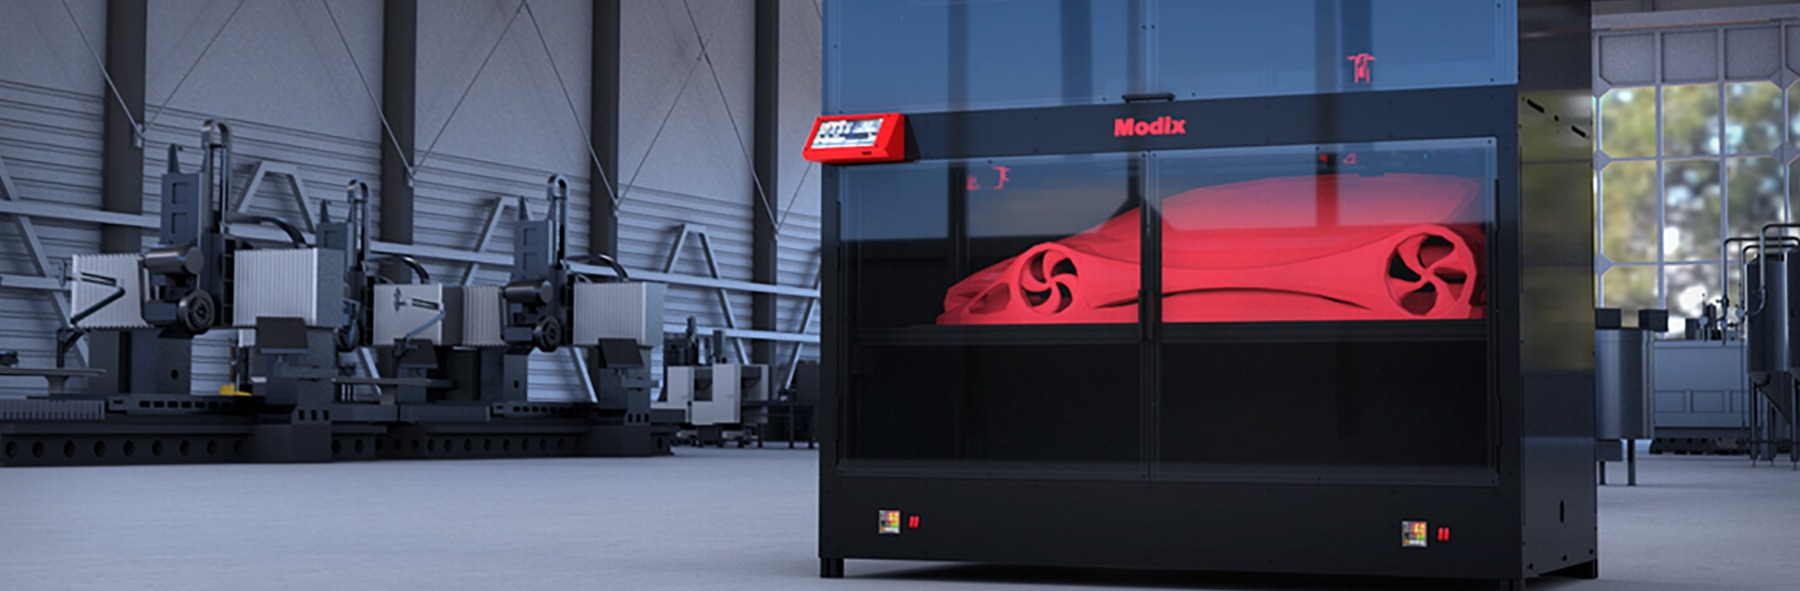 Transform and innovate your business model with large format 3D printing